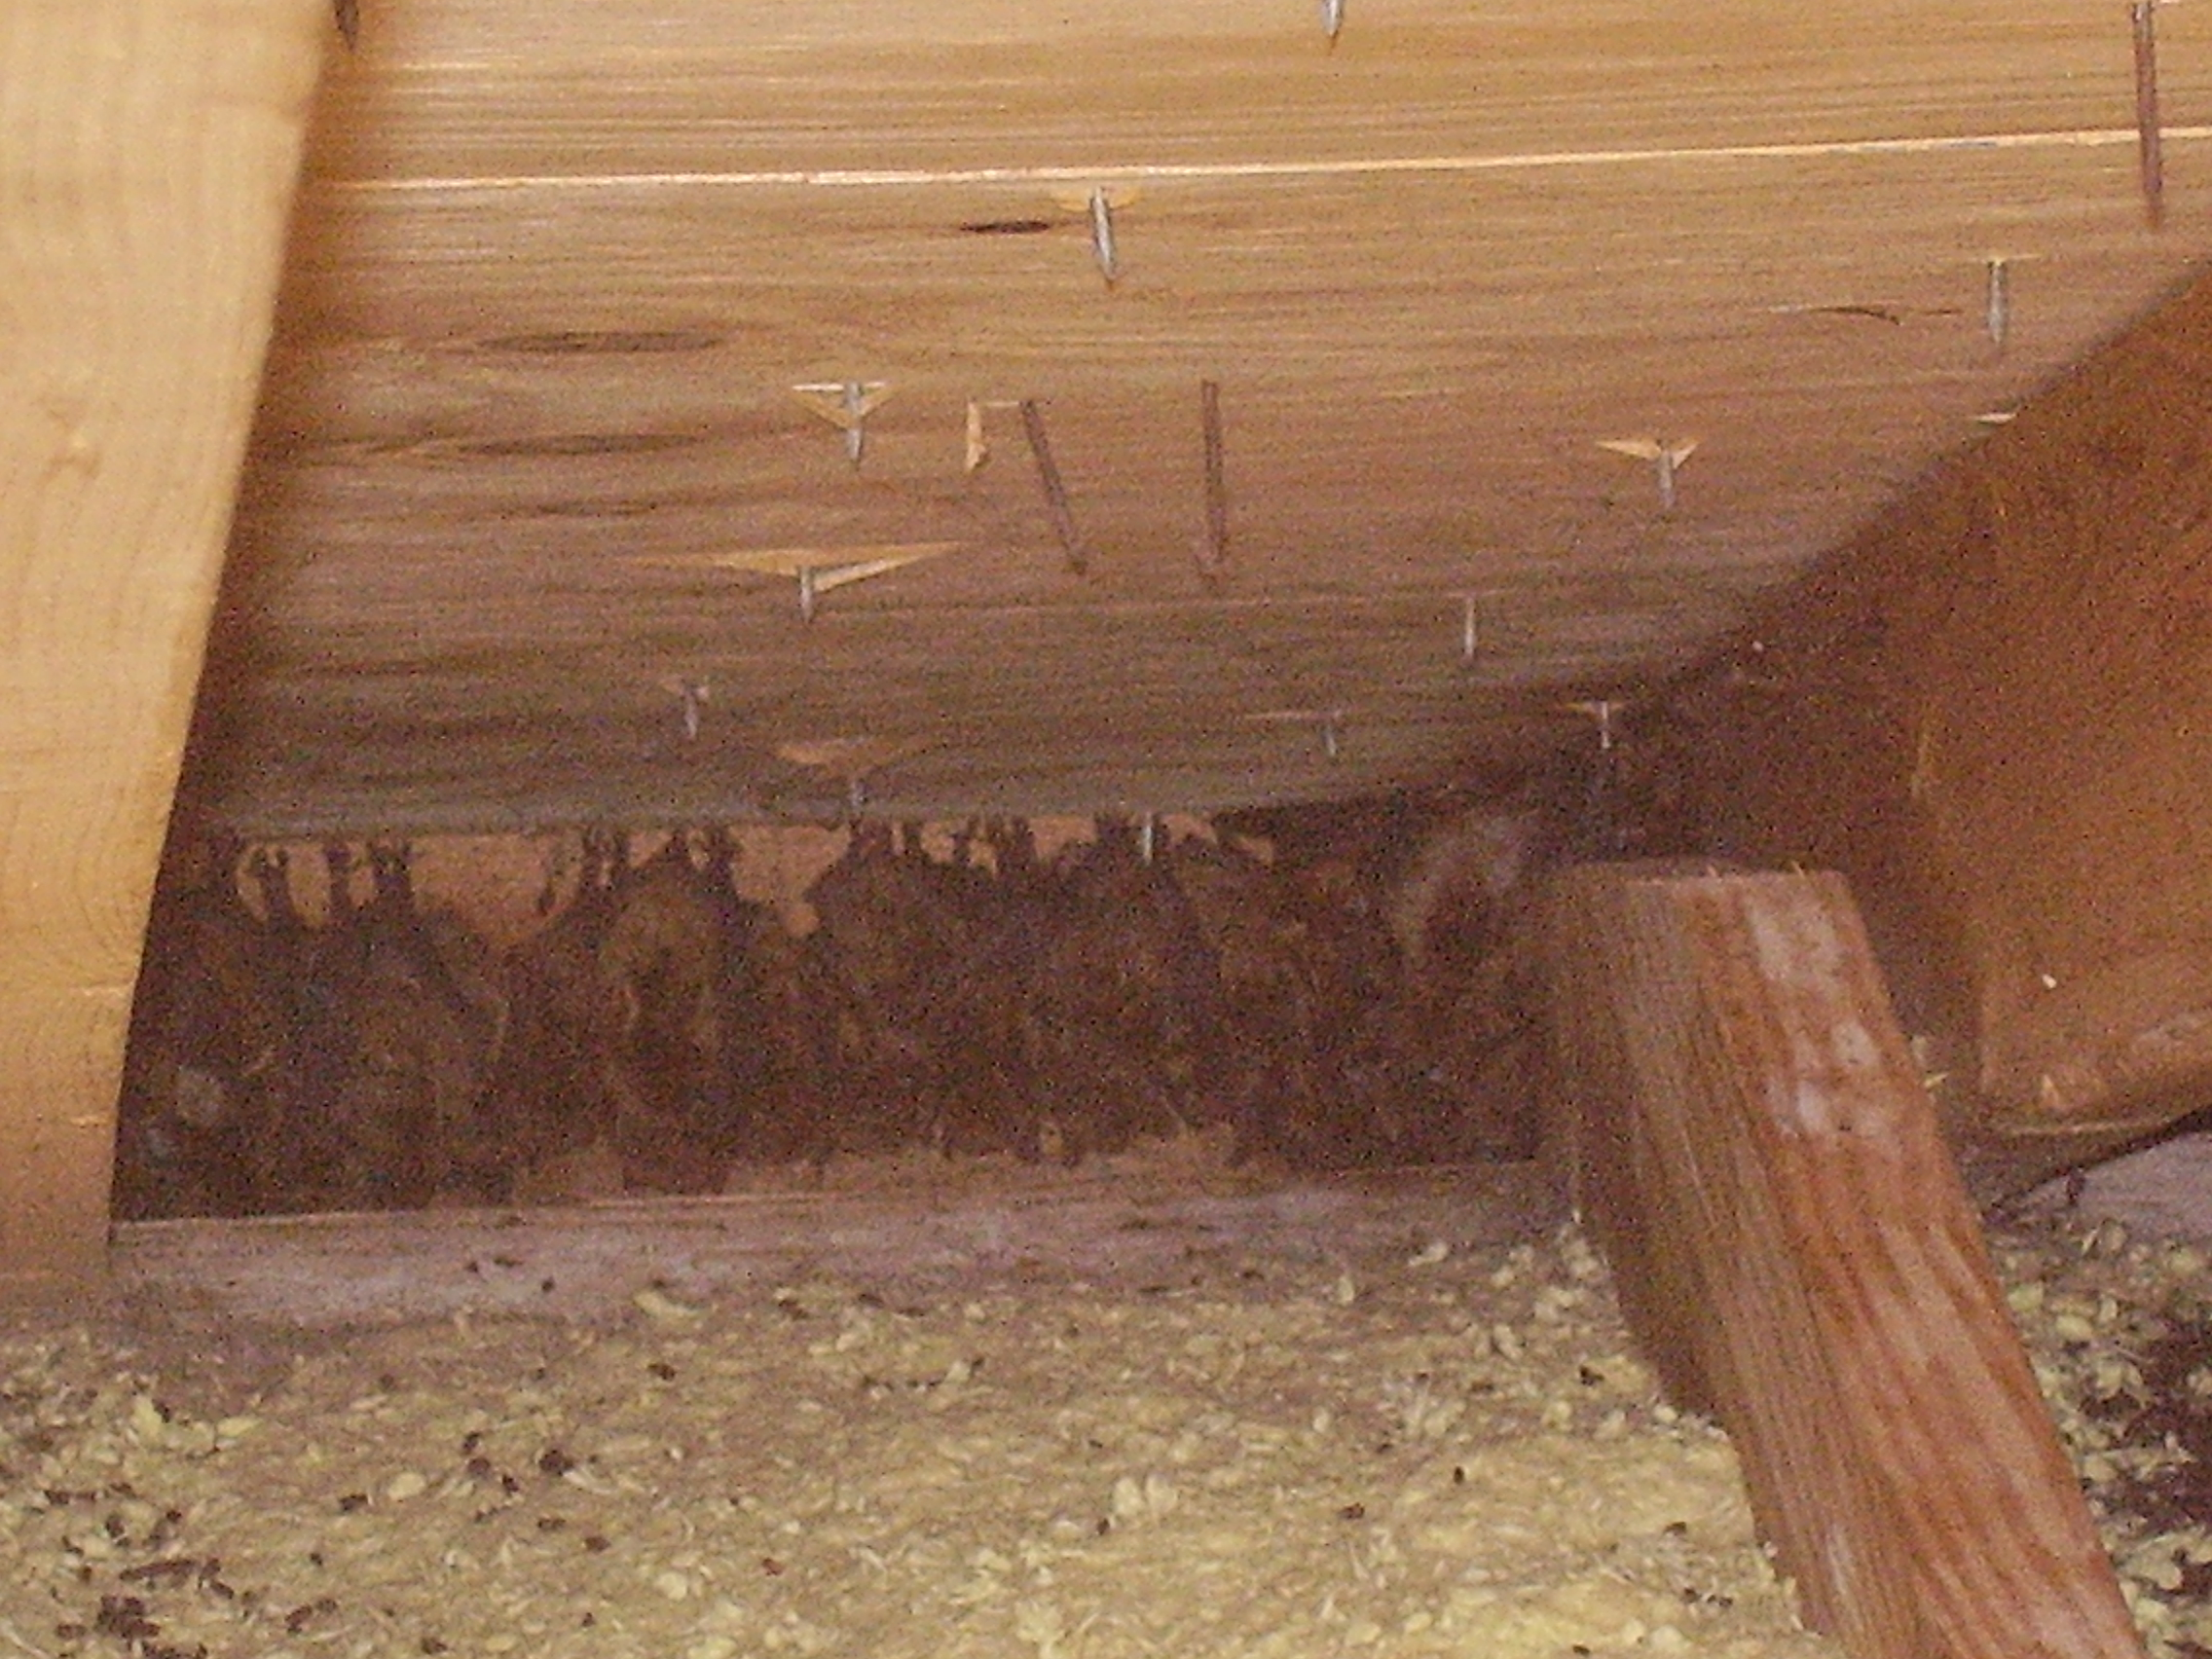 how to tell if bats are in your attic